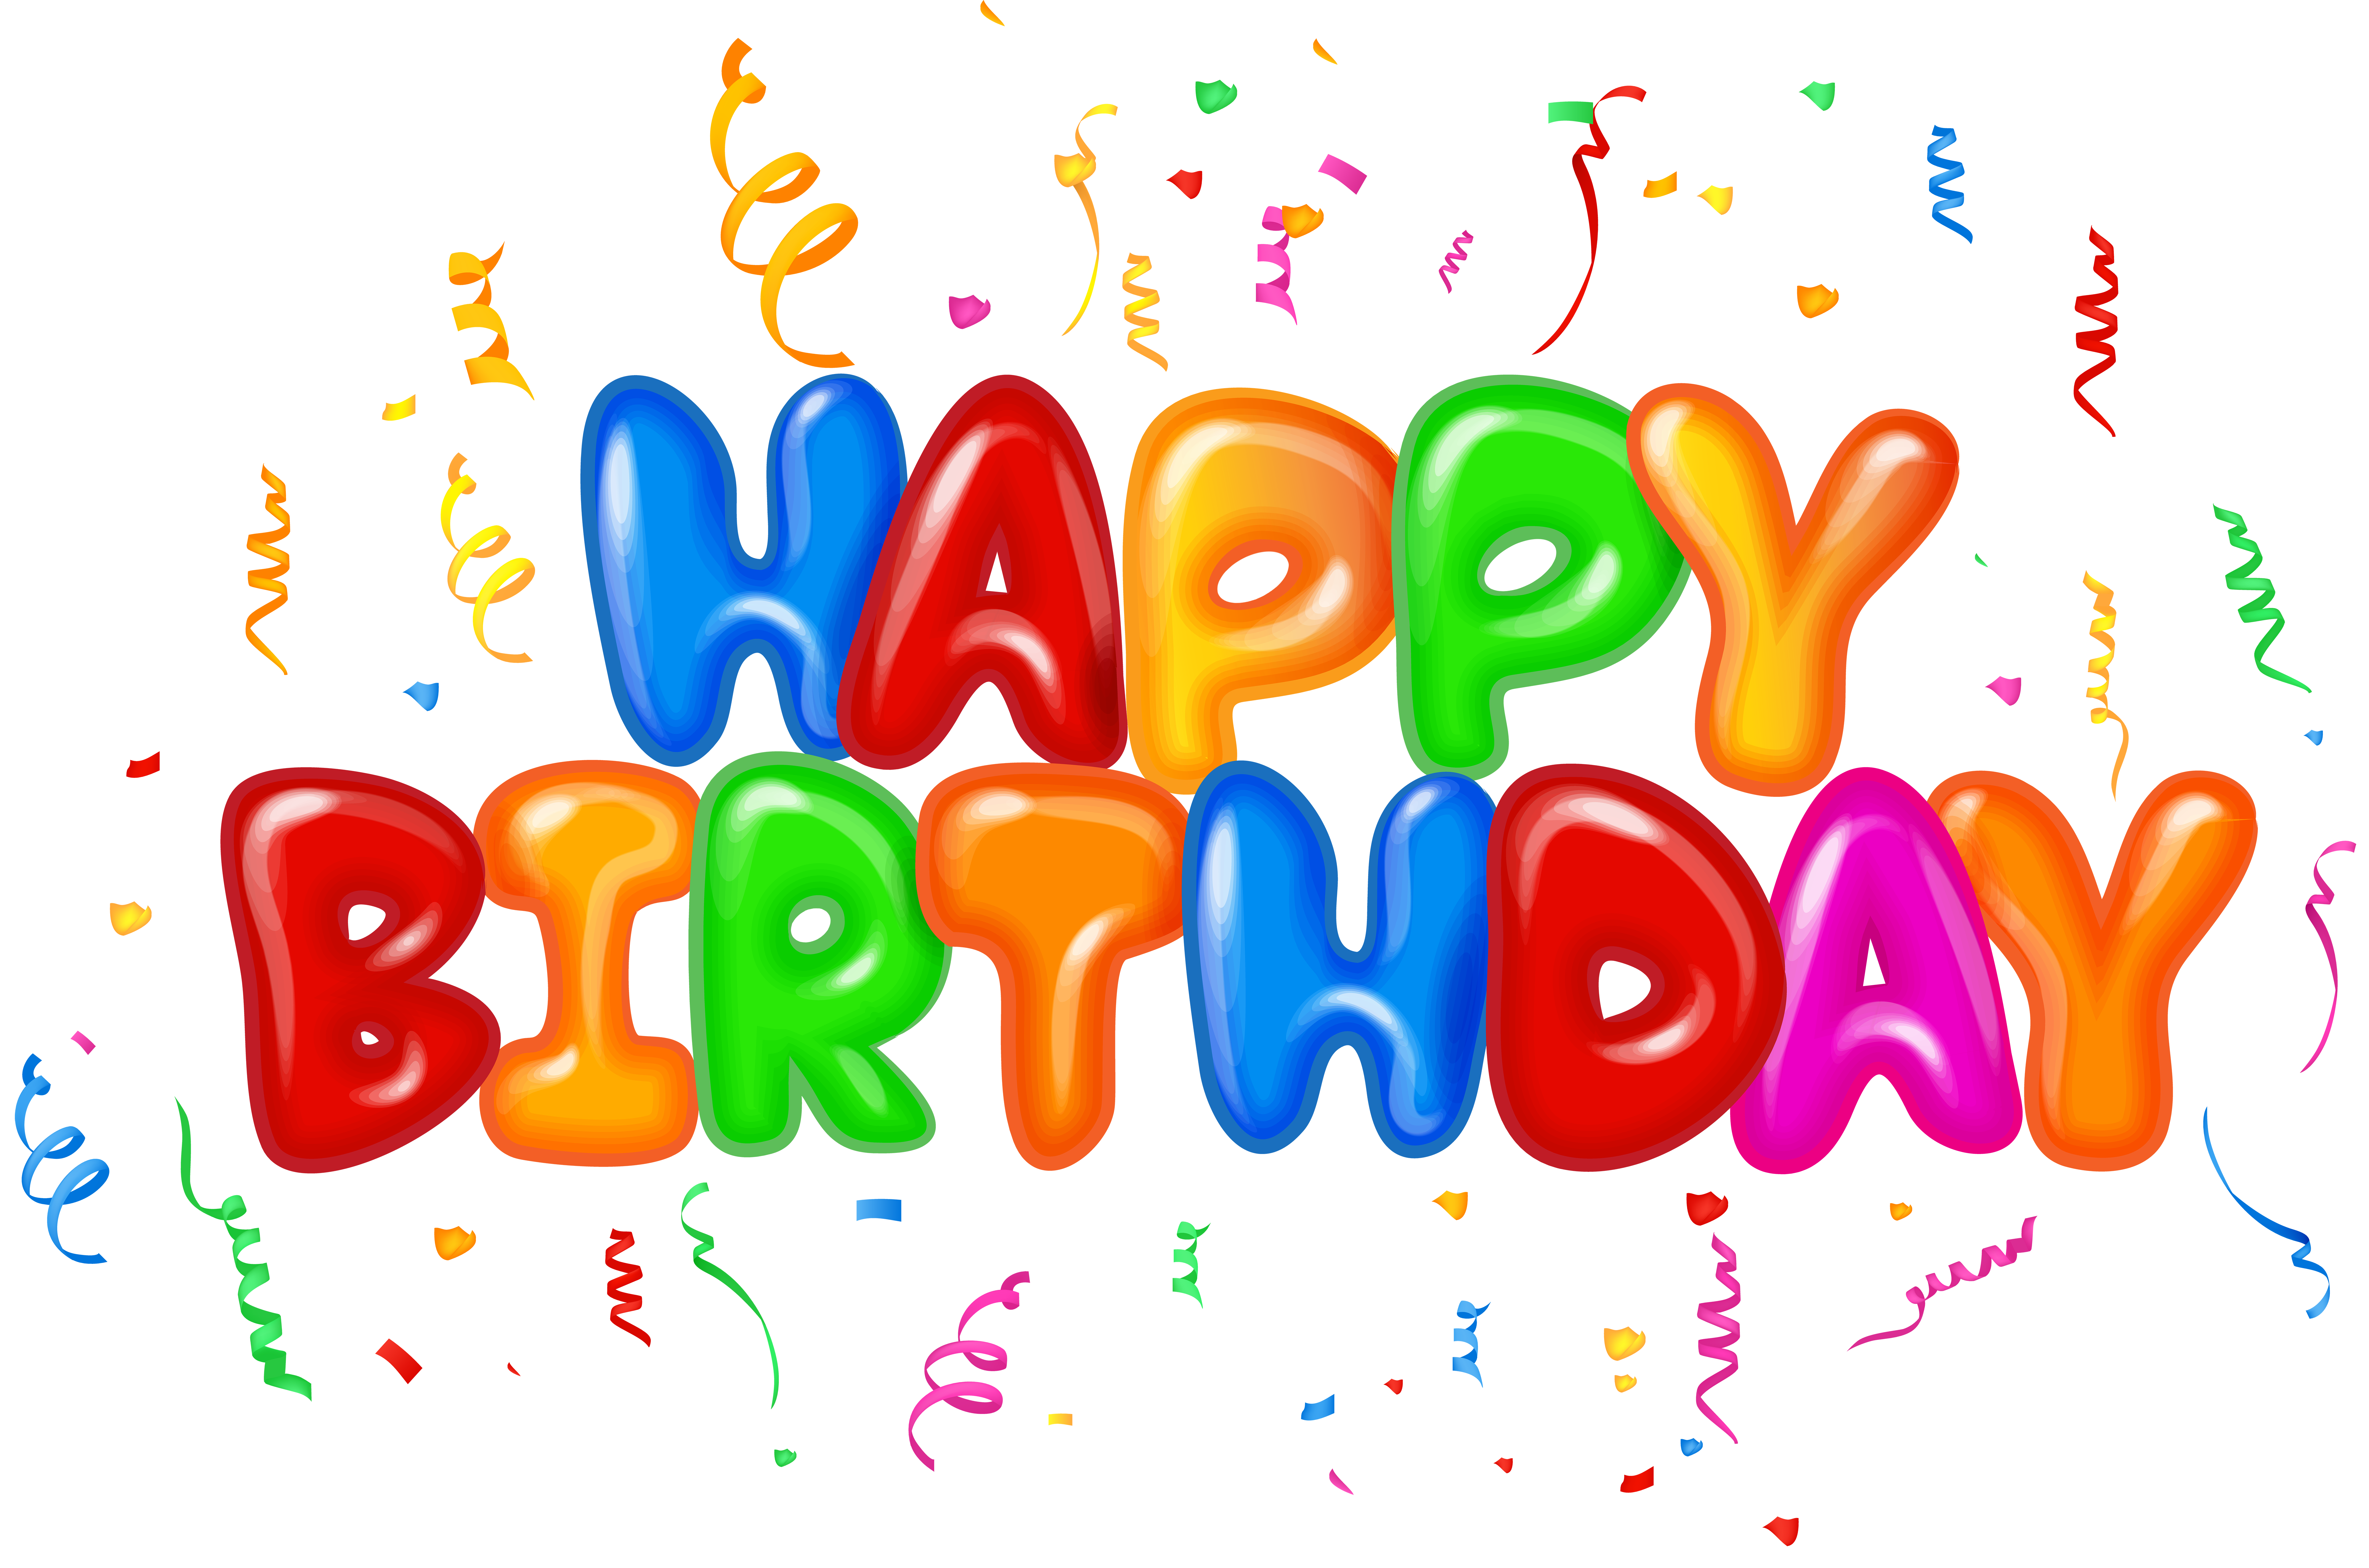 Happy Birthday Text Decor PNG Clip Art Image.